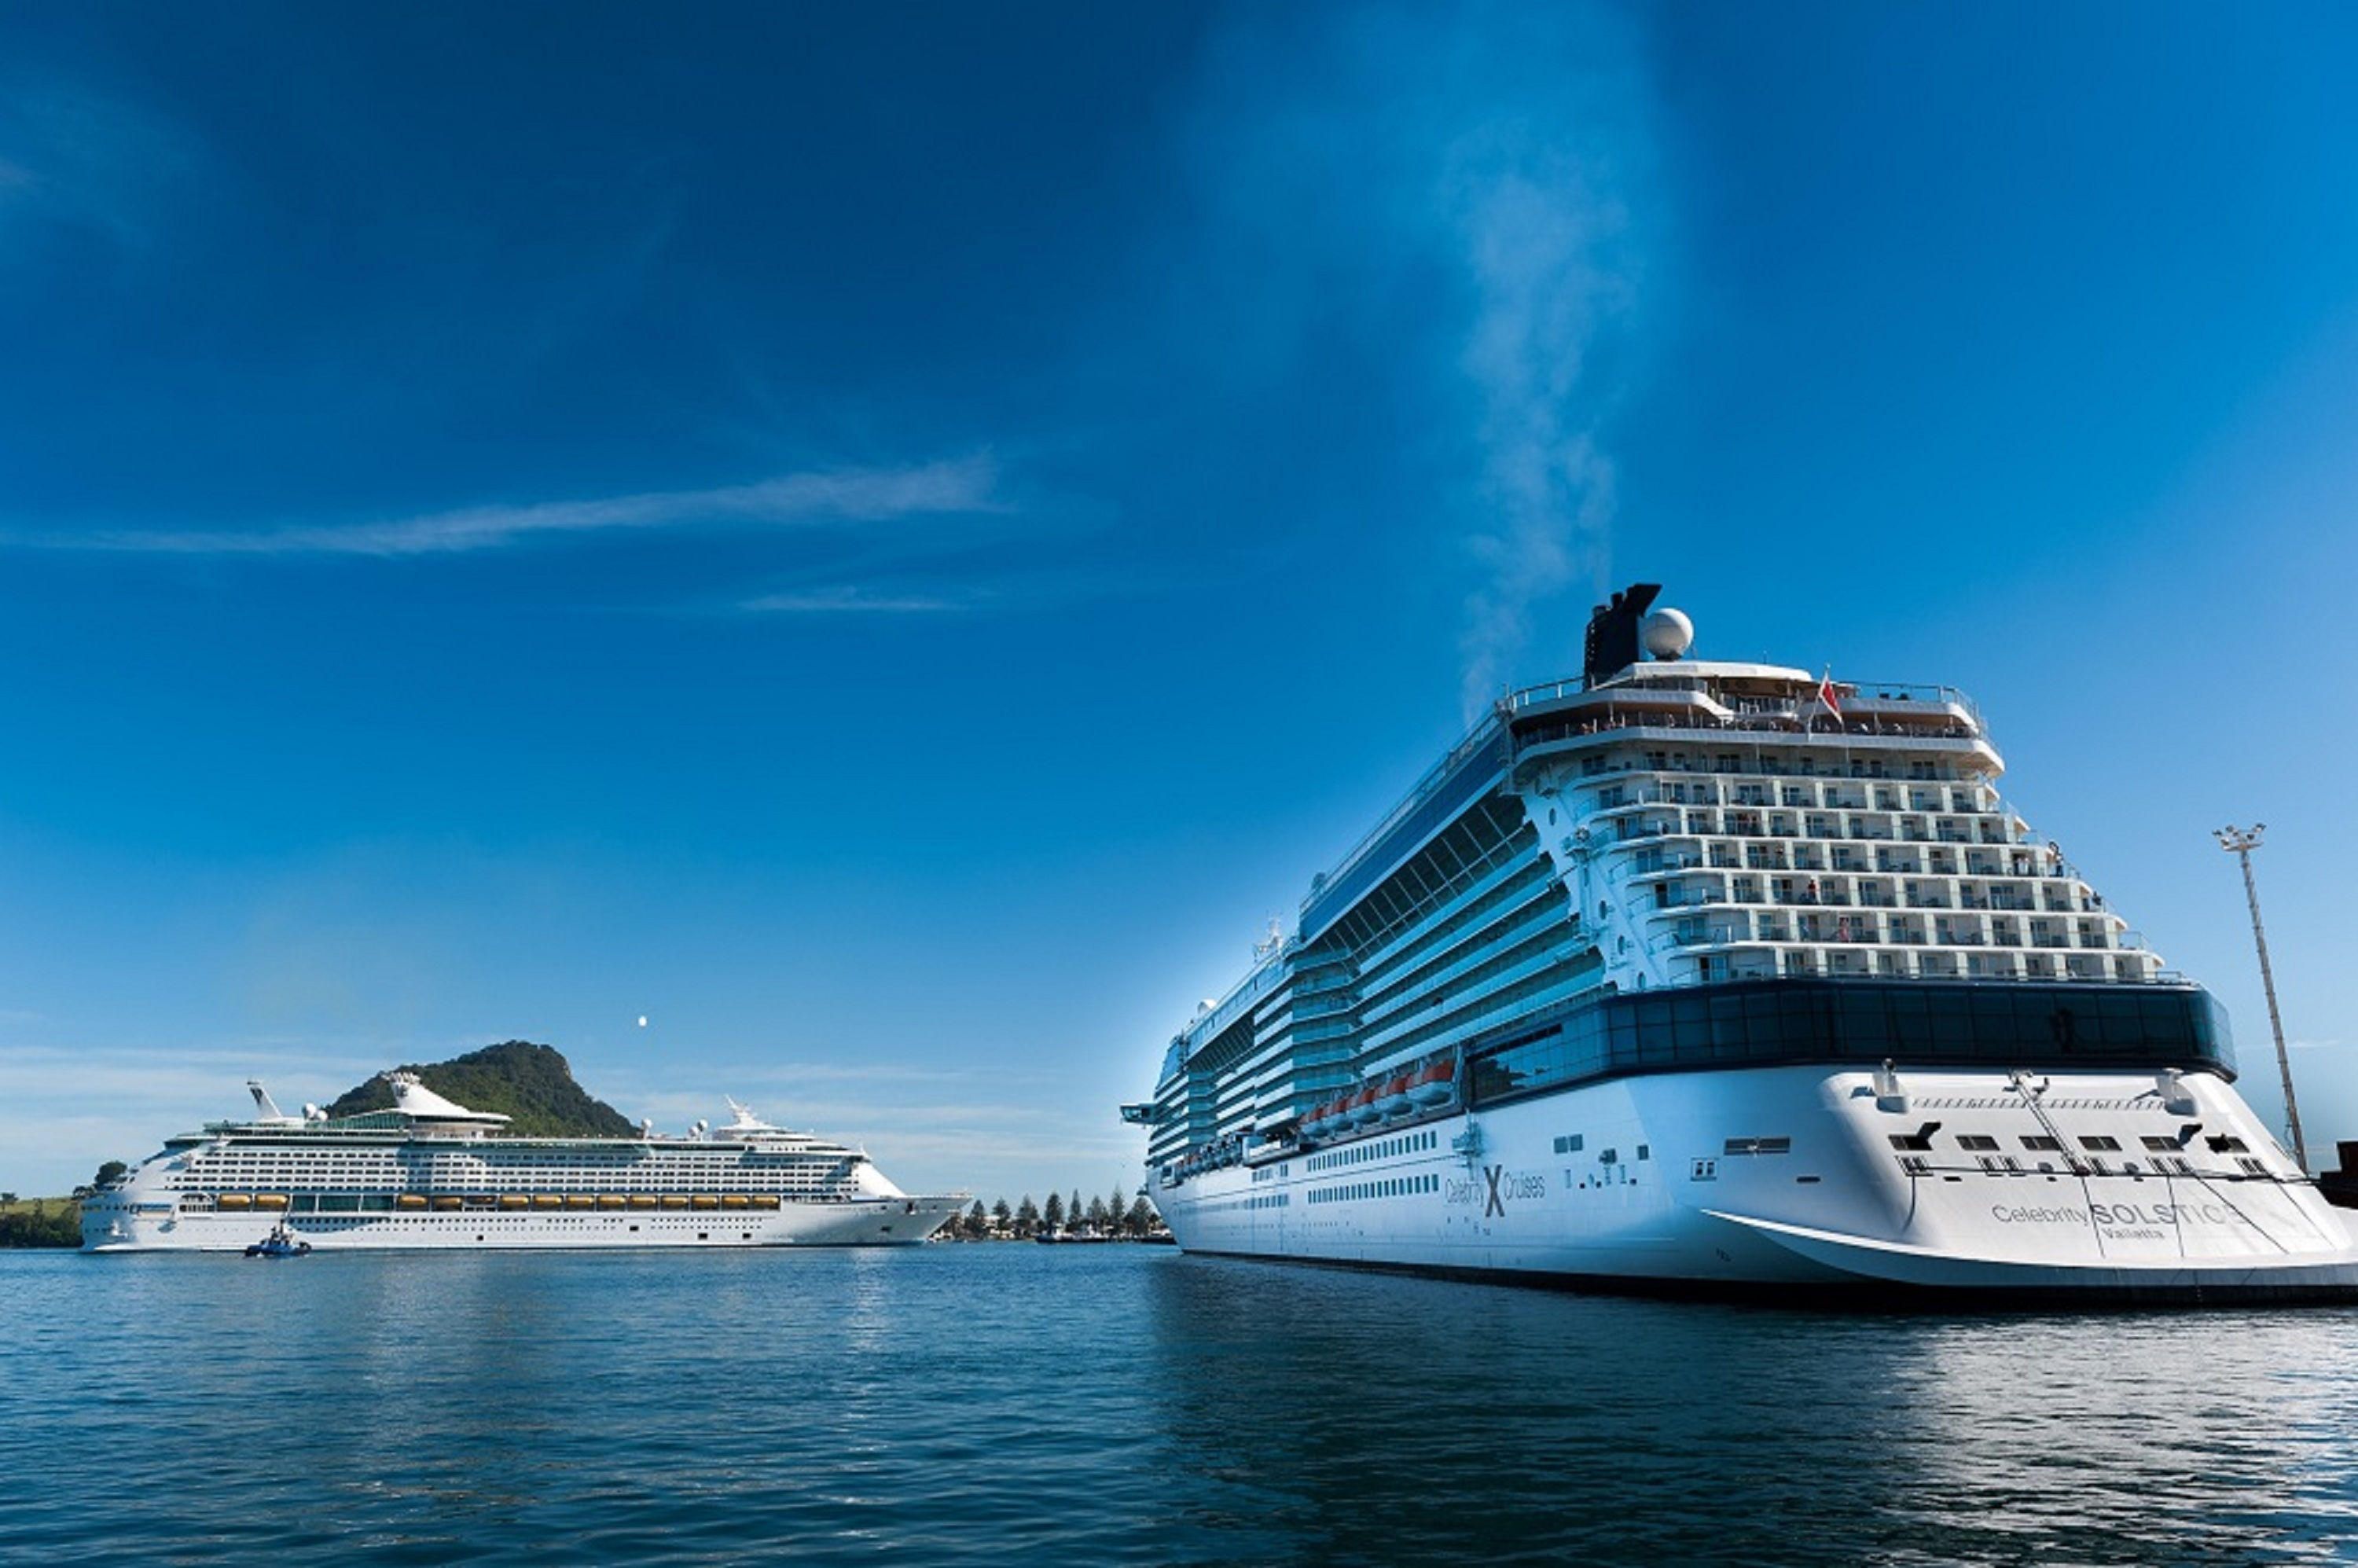 THE TWO LARGEST CRUISE SHIPS BASED IN AUSTRALIA MEET FOR